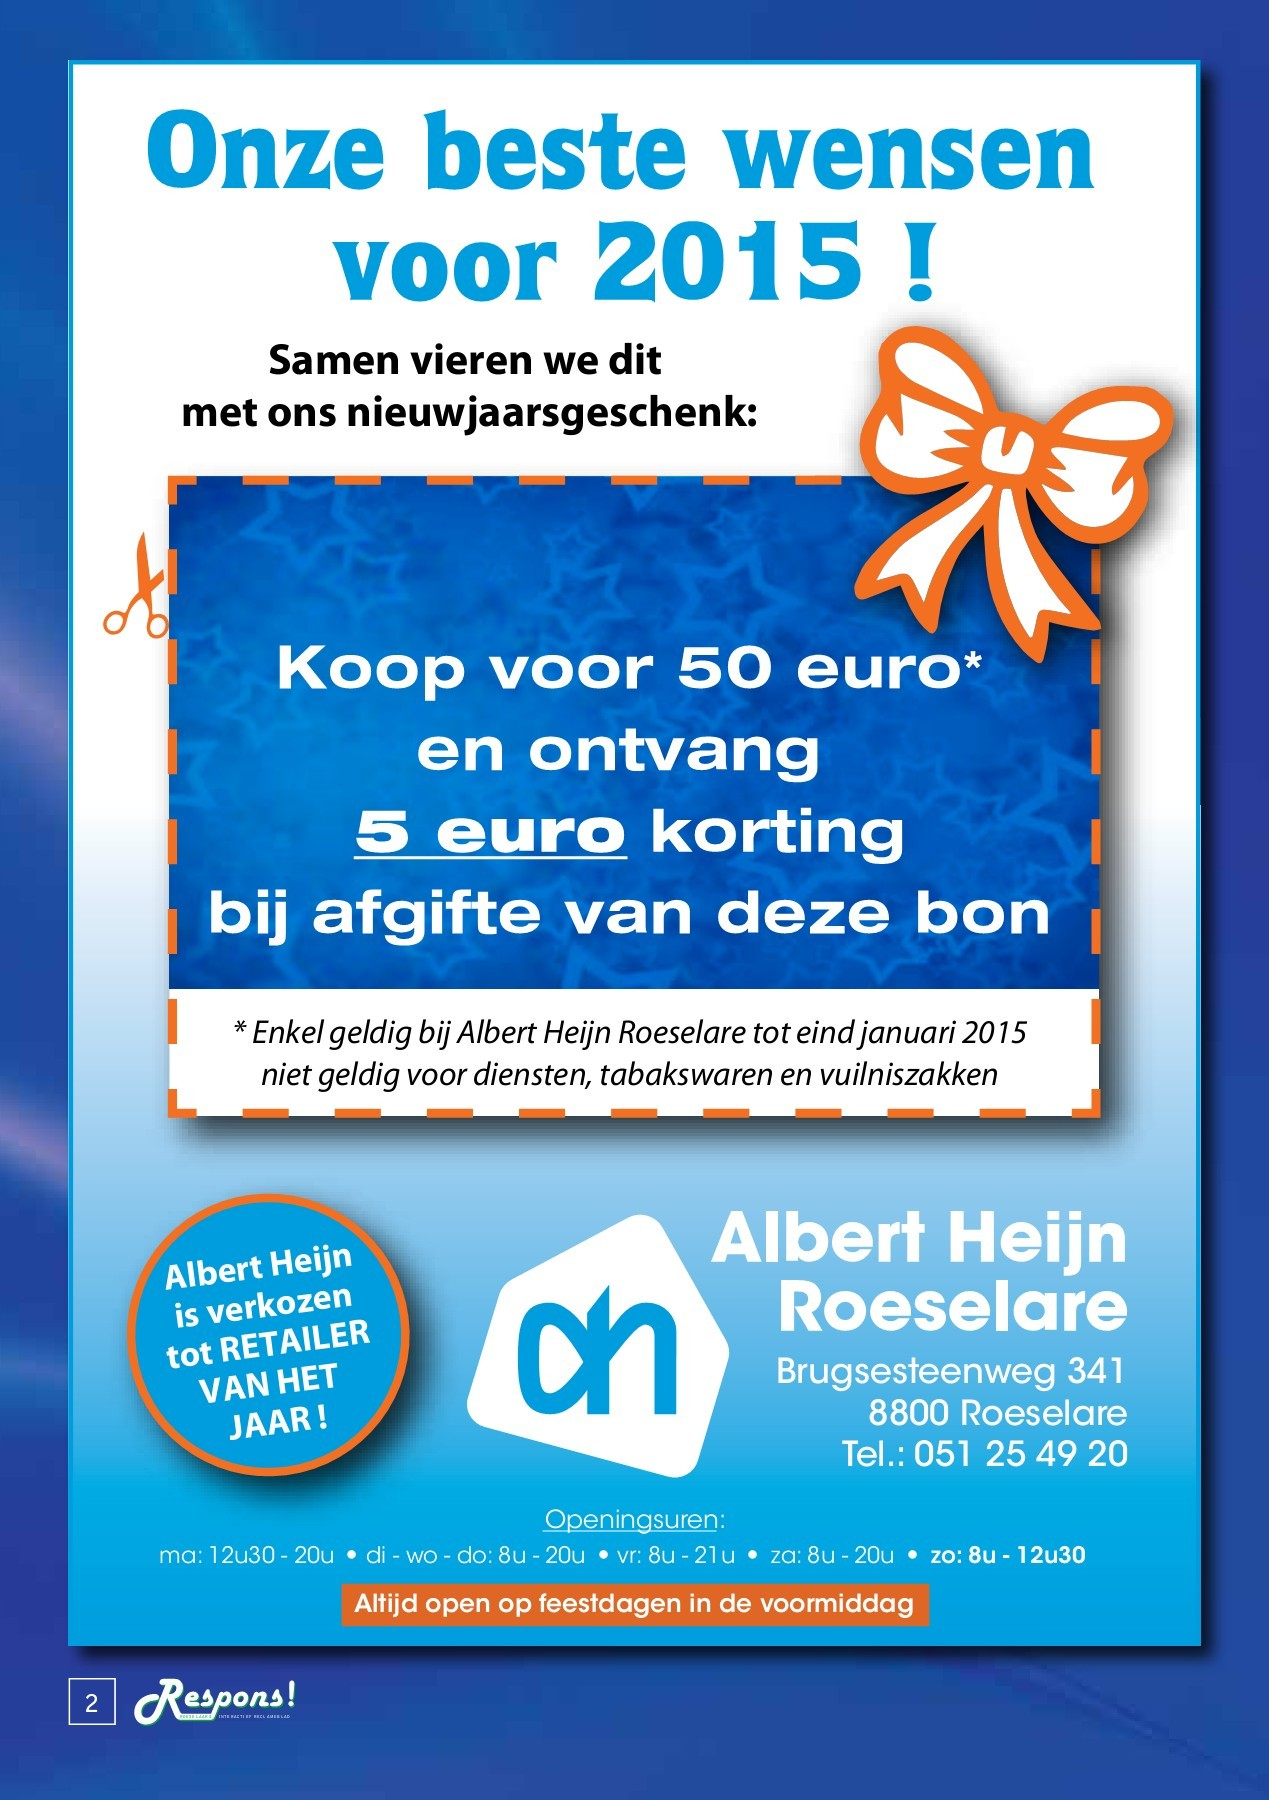 Dovy Keuken Op Afbetaling Respons Januari 2015 Pages 1 32 Text Version Fliphtml5